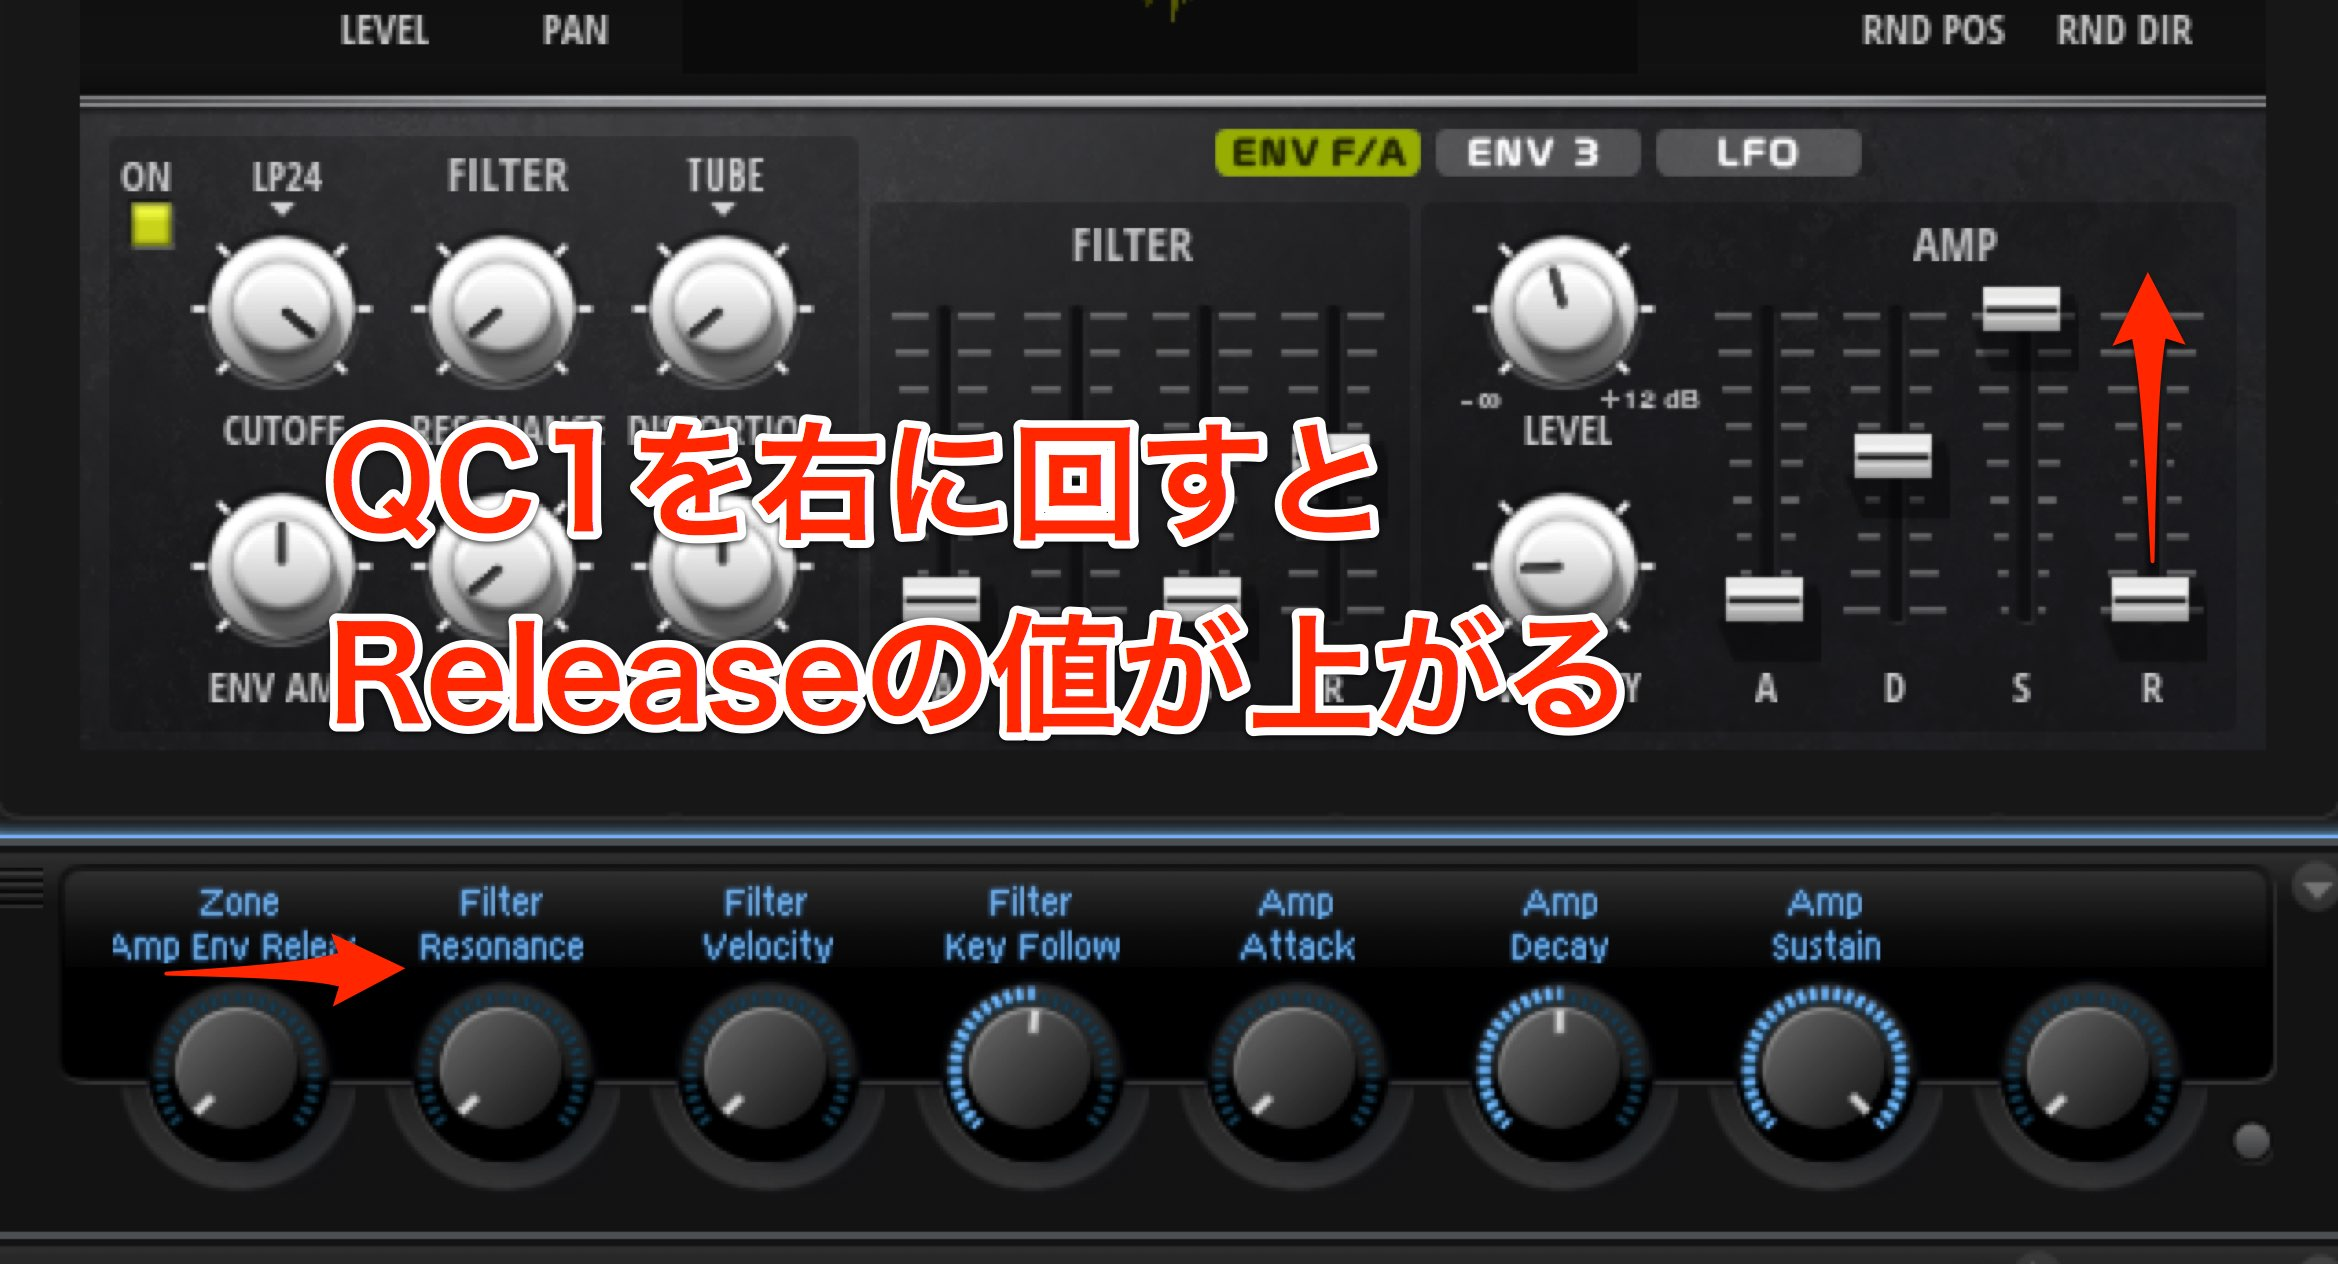 Releaseの値